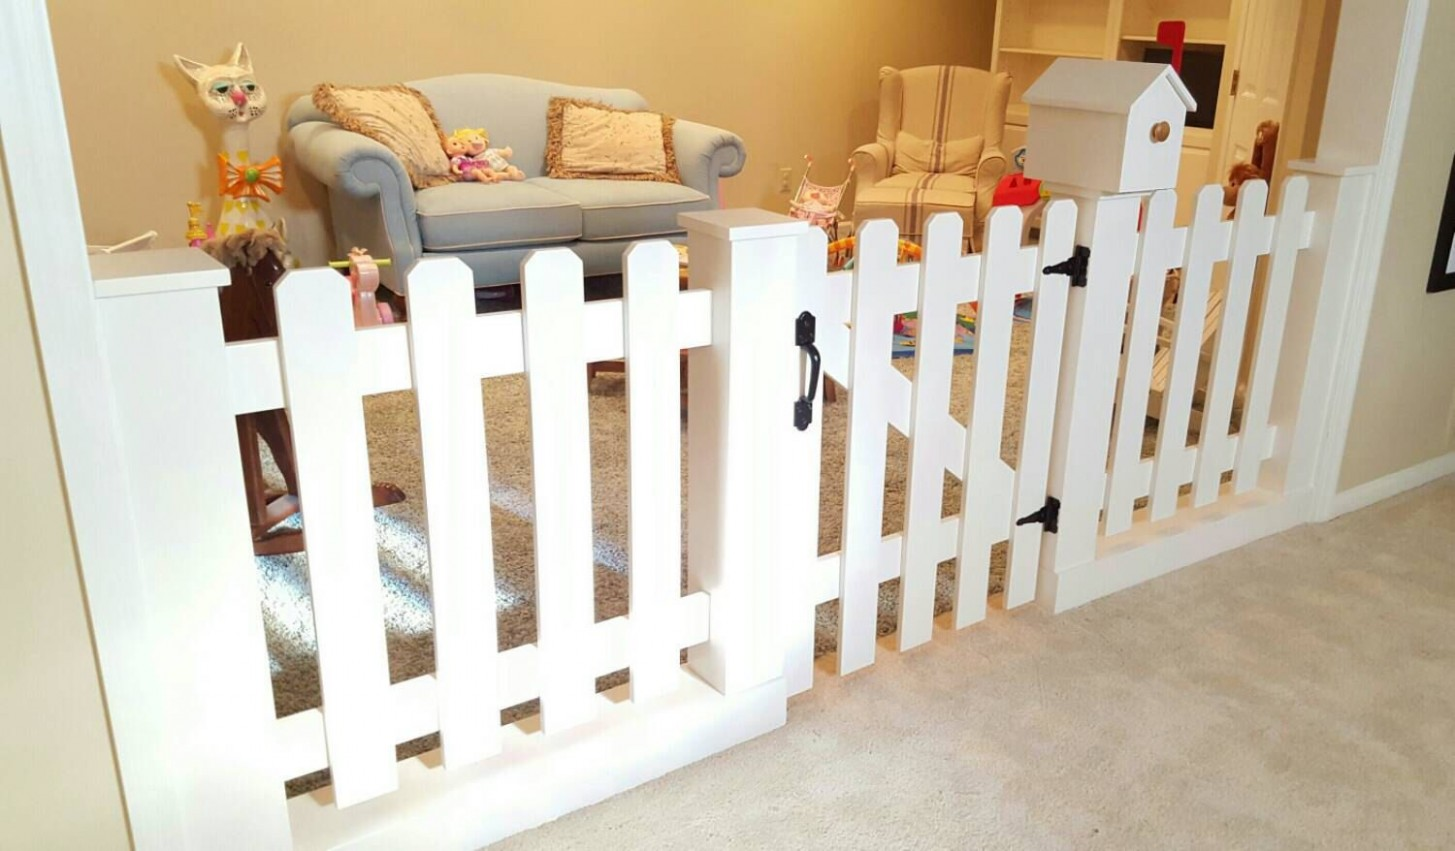 Baby Gate Playroom Picket Fence Room Divider by  - Baby Room Divider